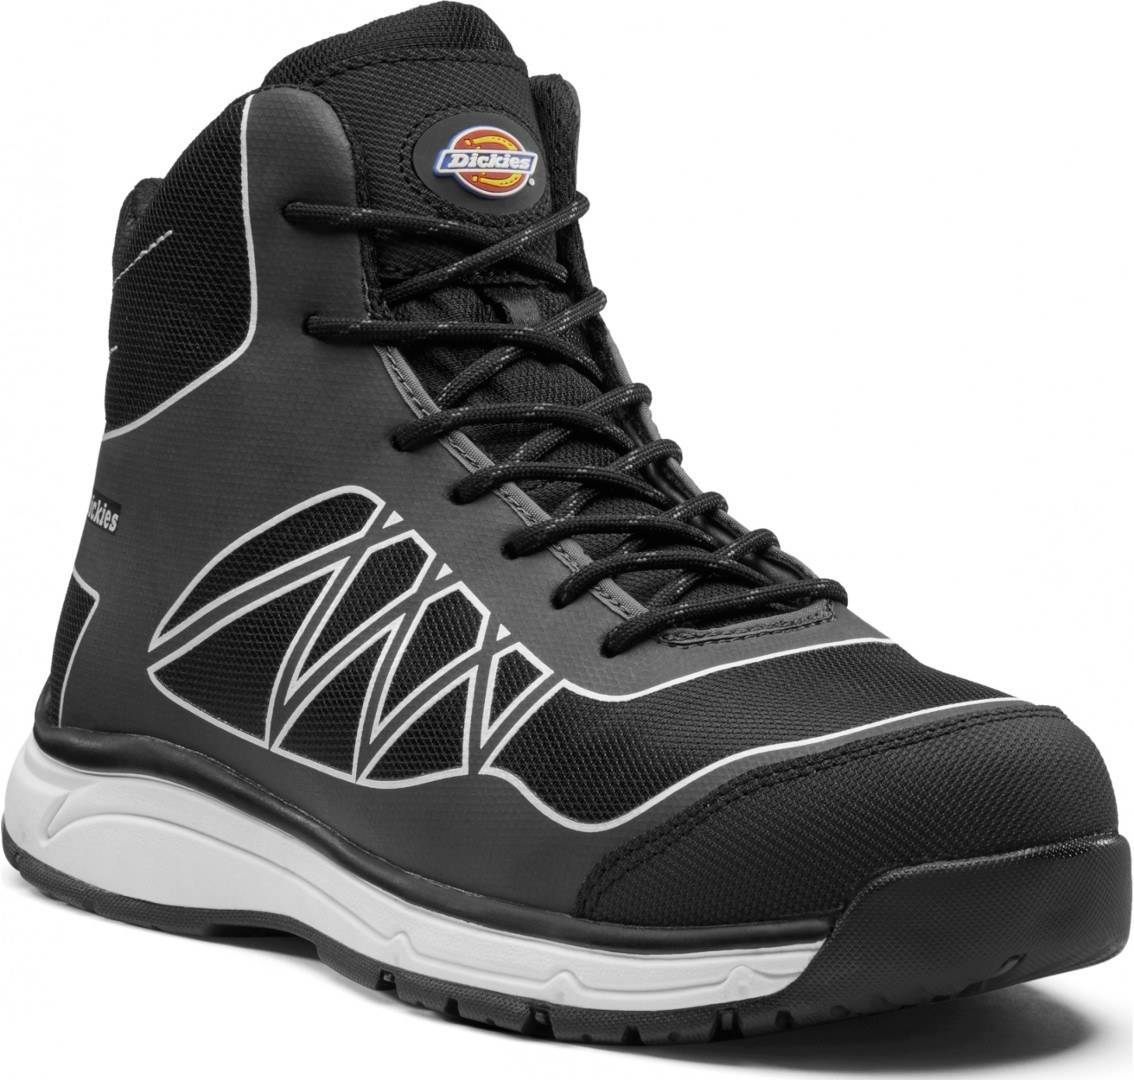 dickies workwear phoenix safety boots grey white 42